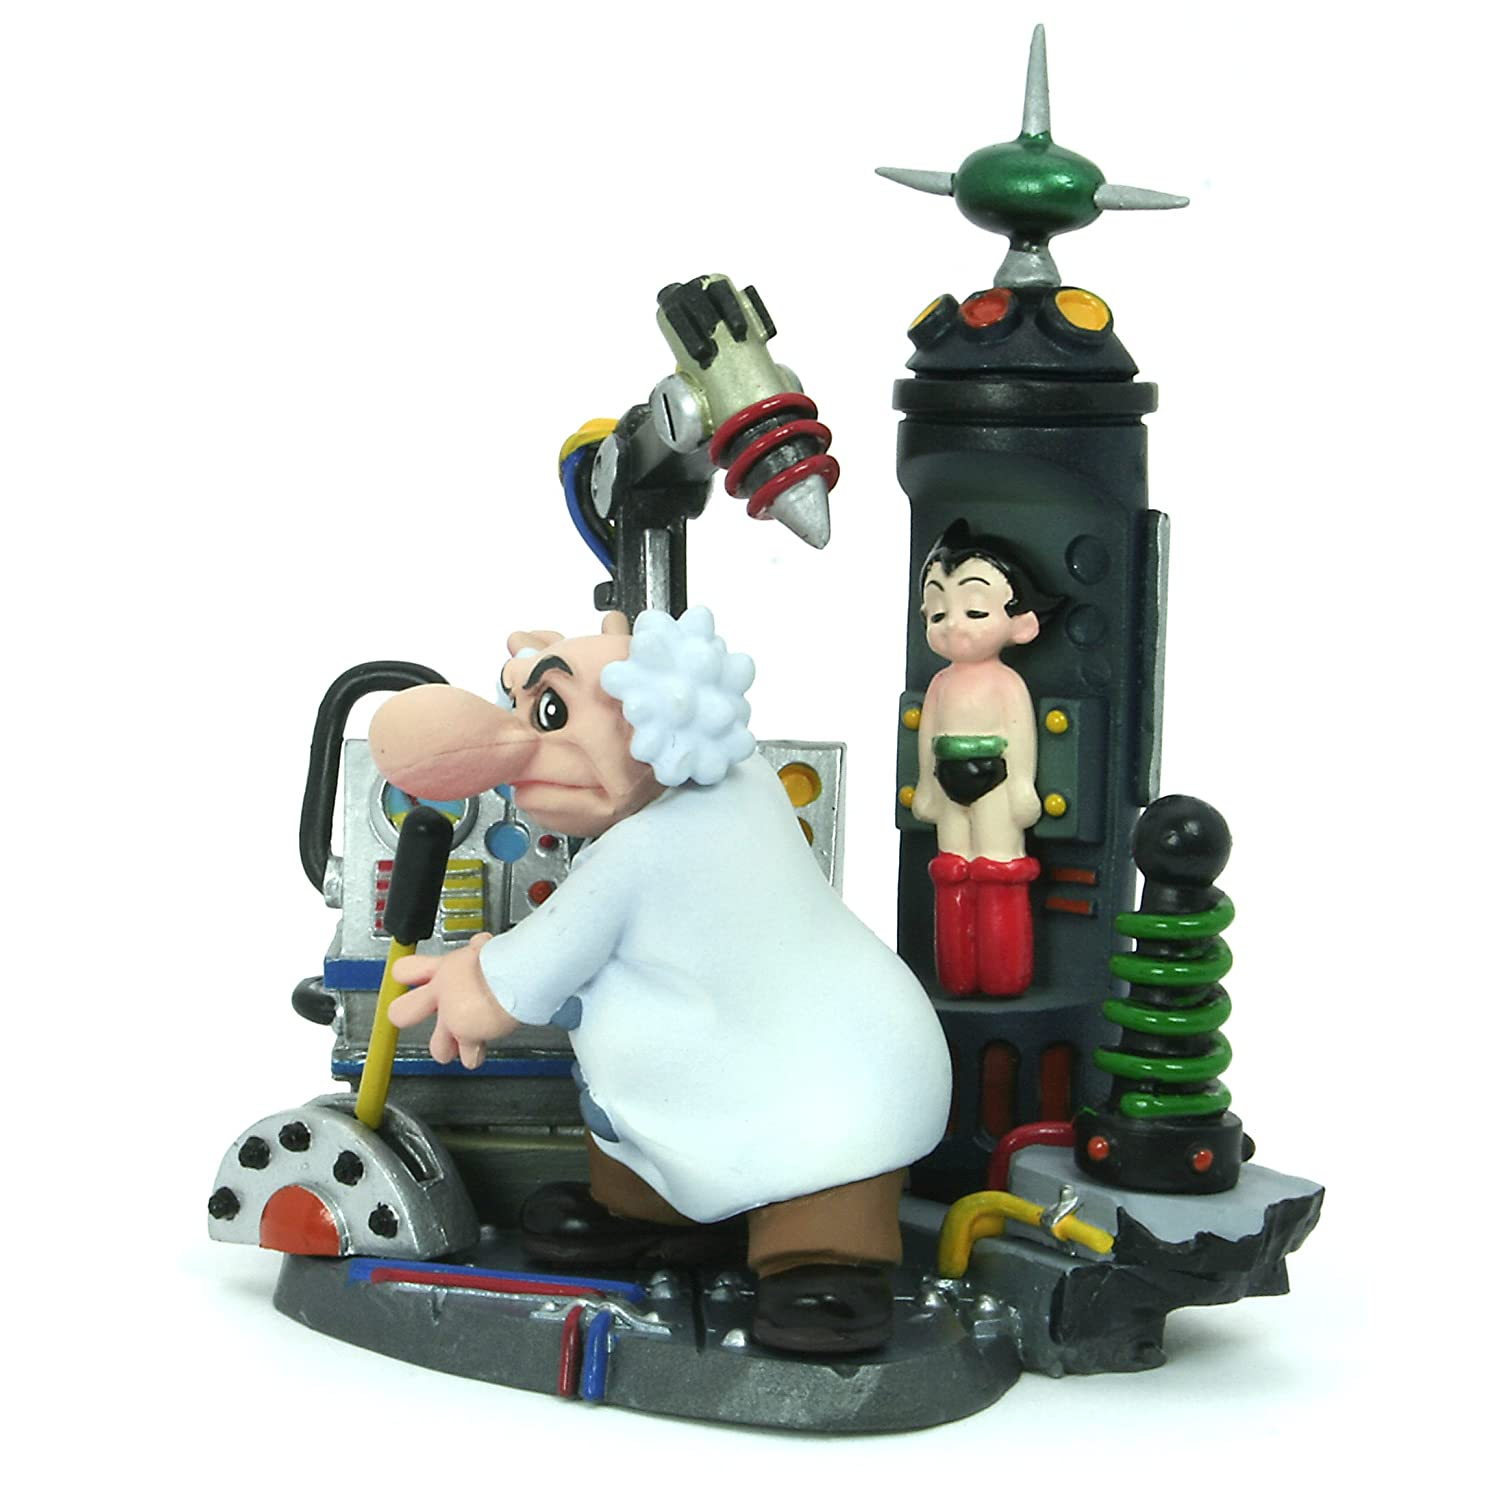 Astro Boy Action Figures, Toys, Posters And Online Games